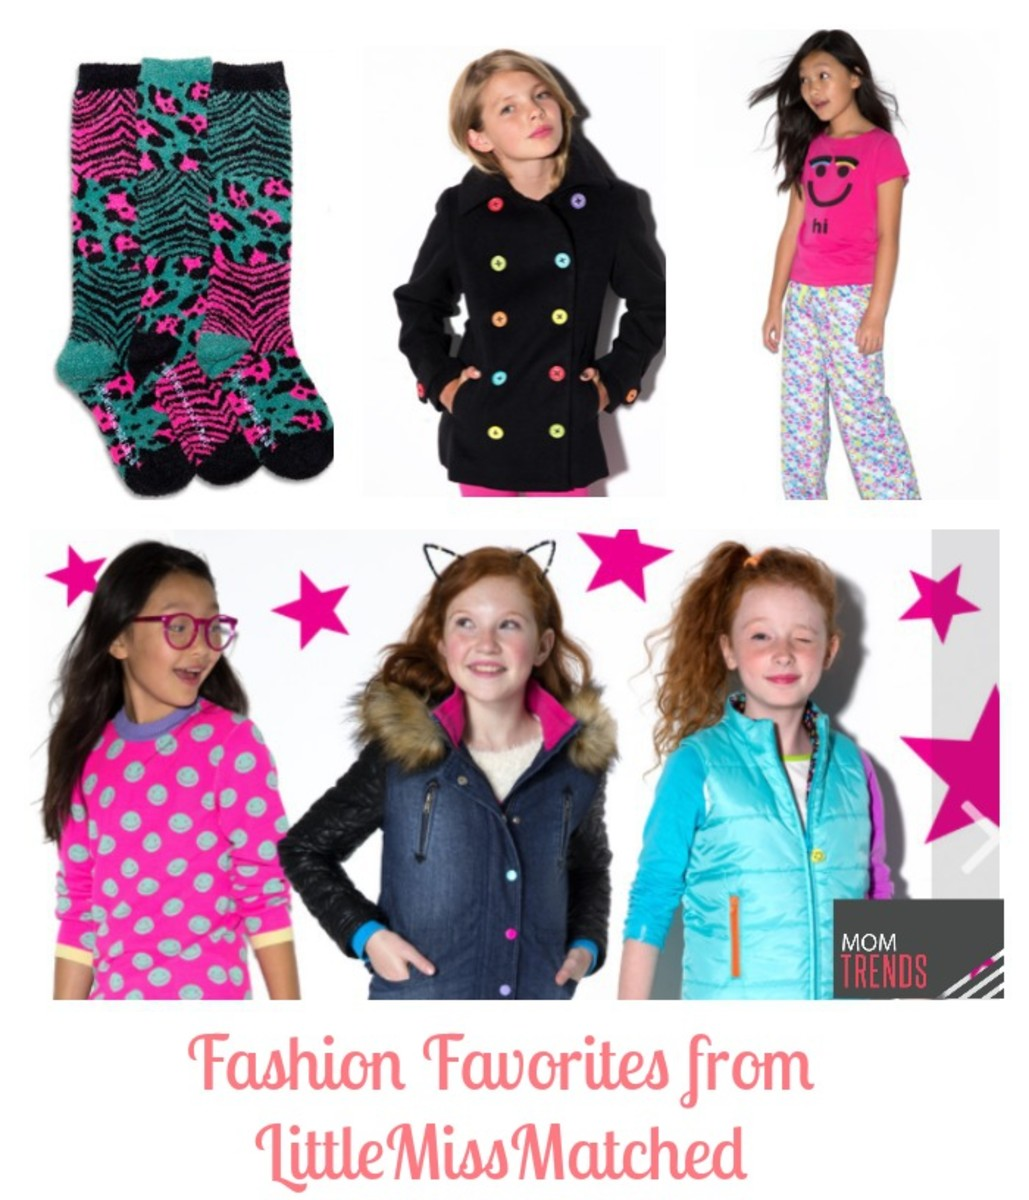 Fashion Favorites from LittleMissMatched